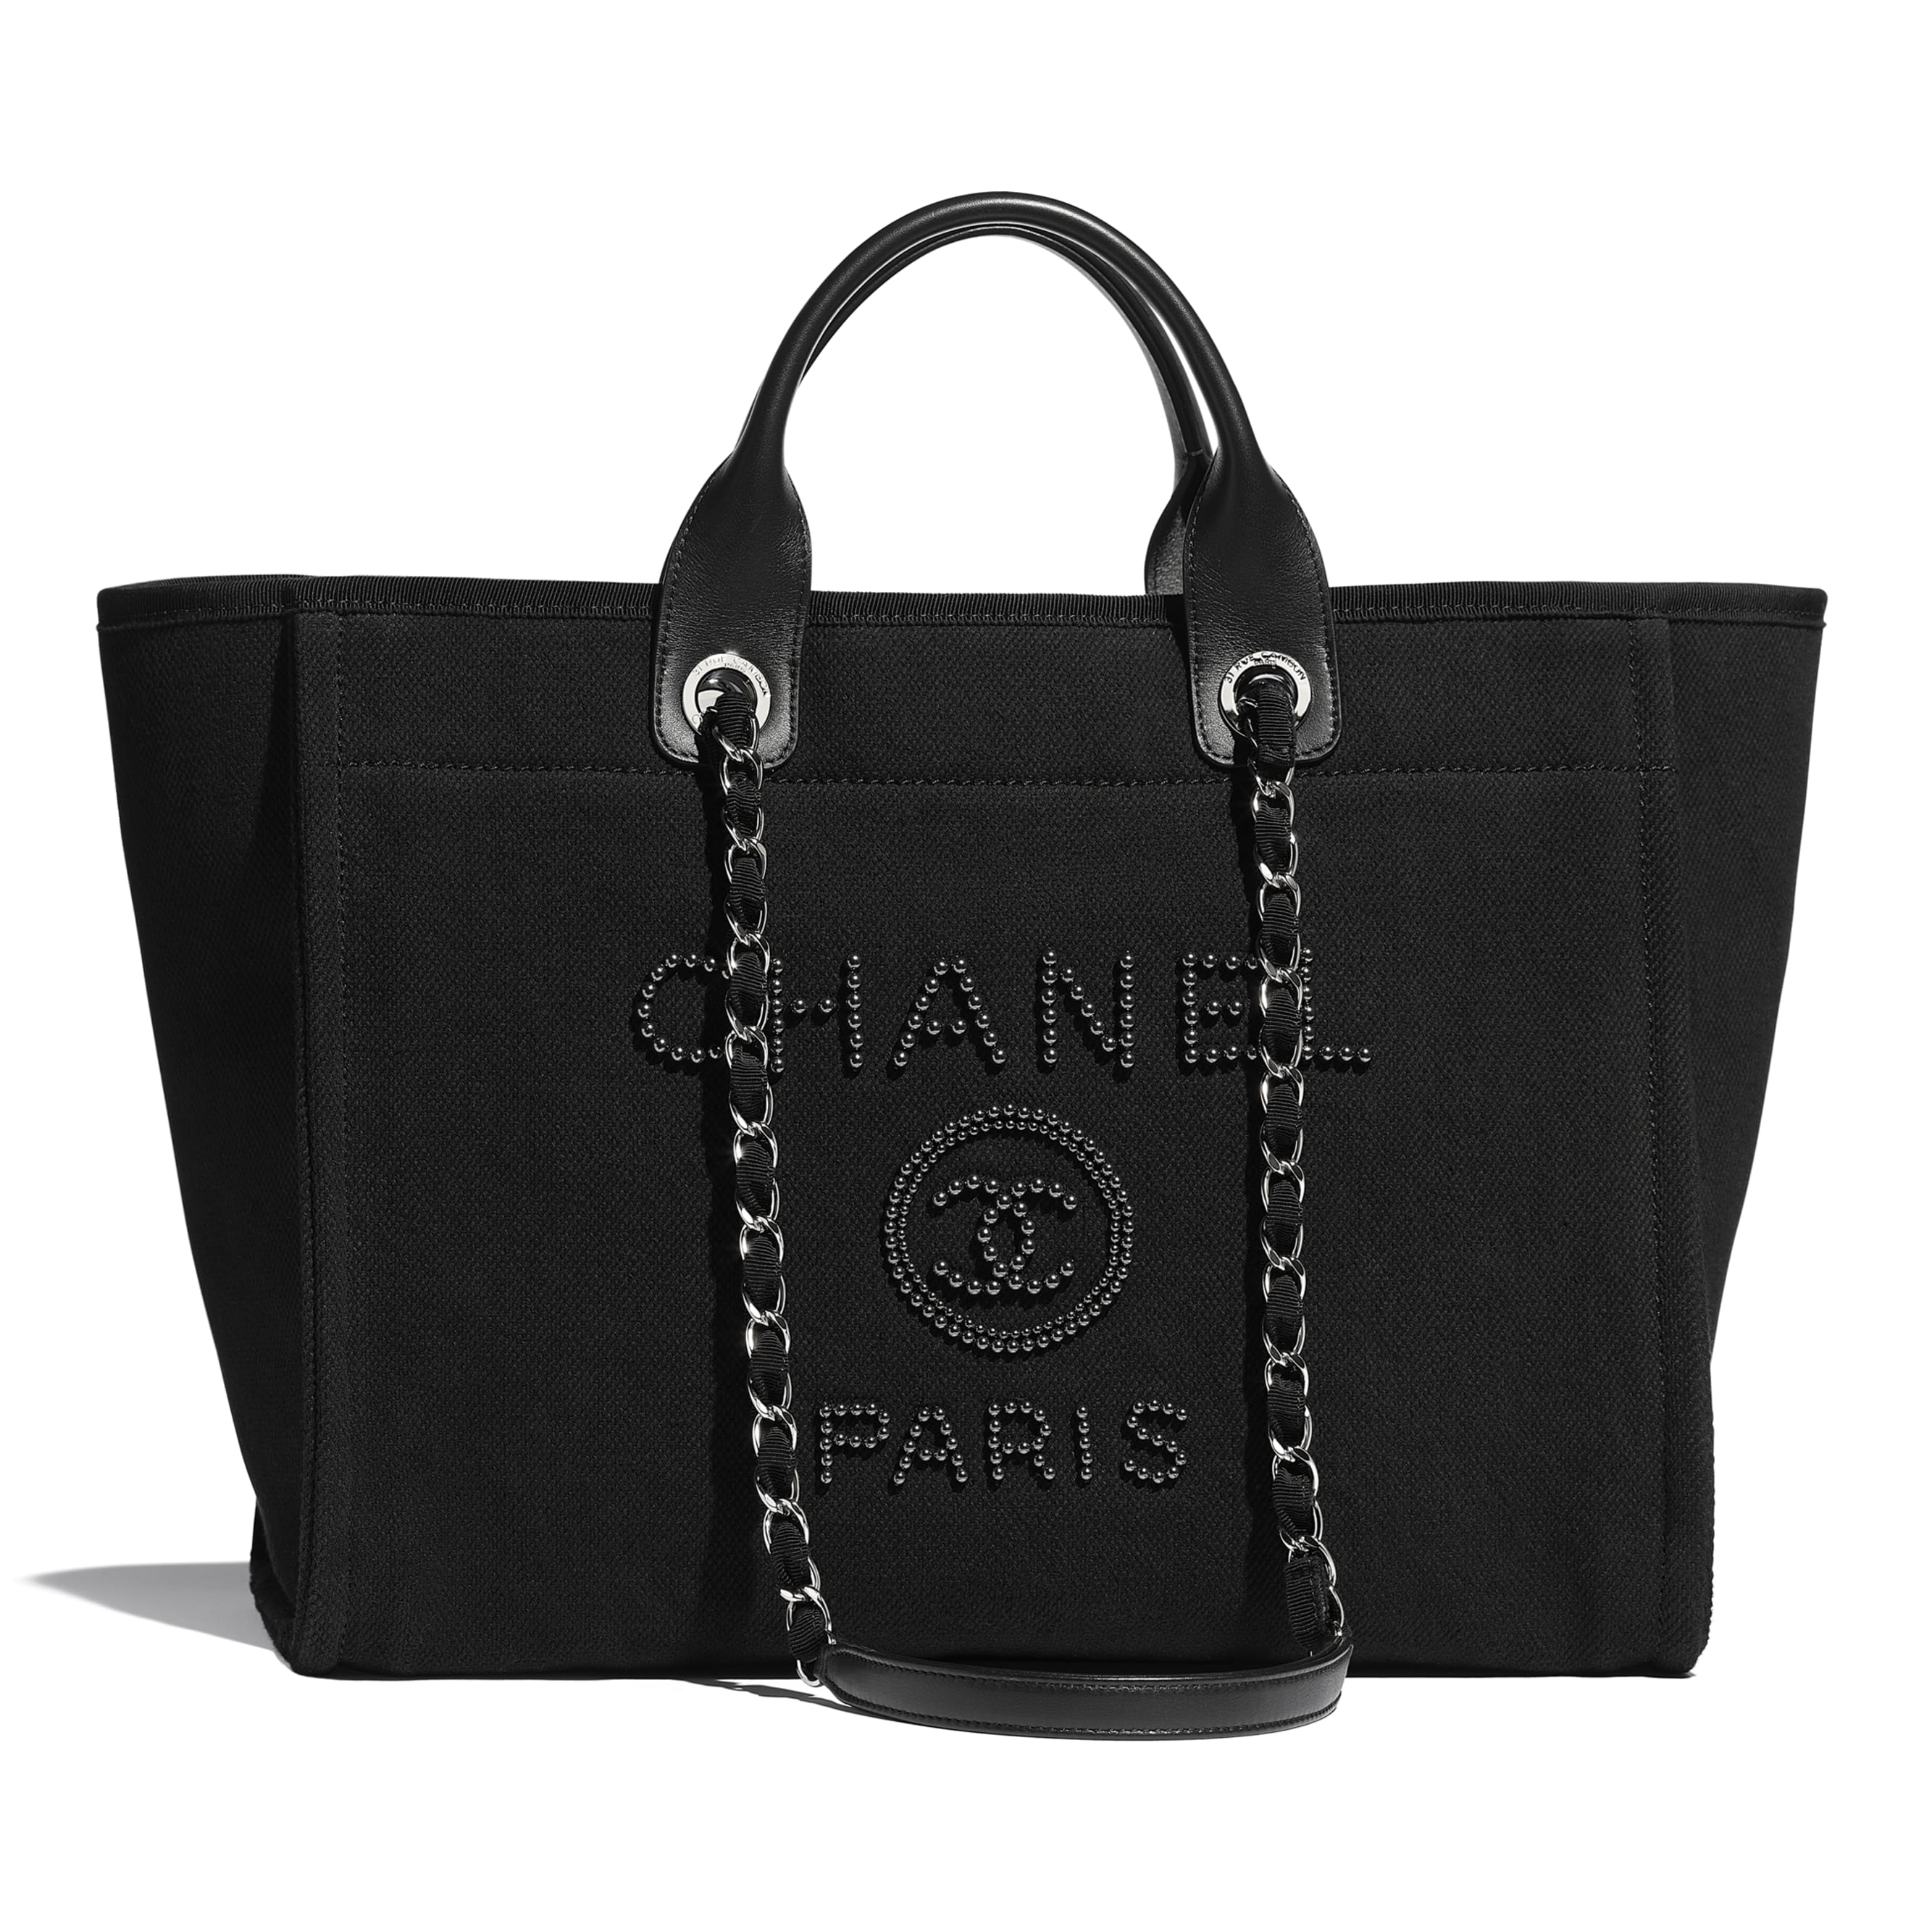 Shopping Bag - Black - Mixed Fibers, Imitation Pearls, Silver-Tone Metal - Default view - see standard sized version